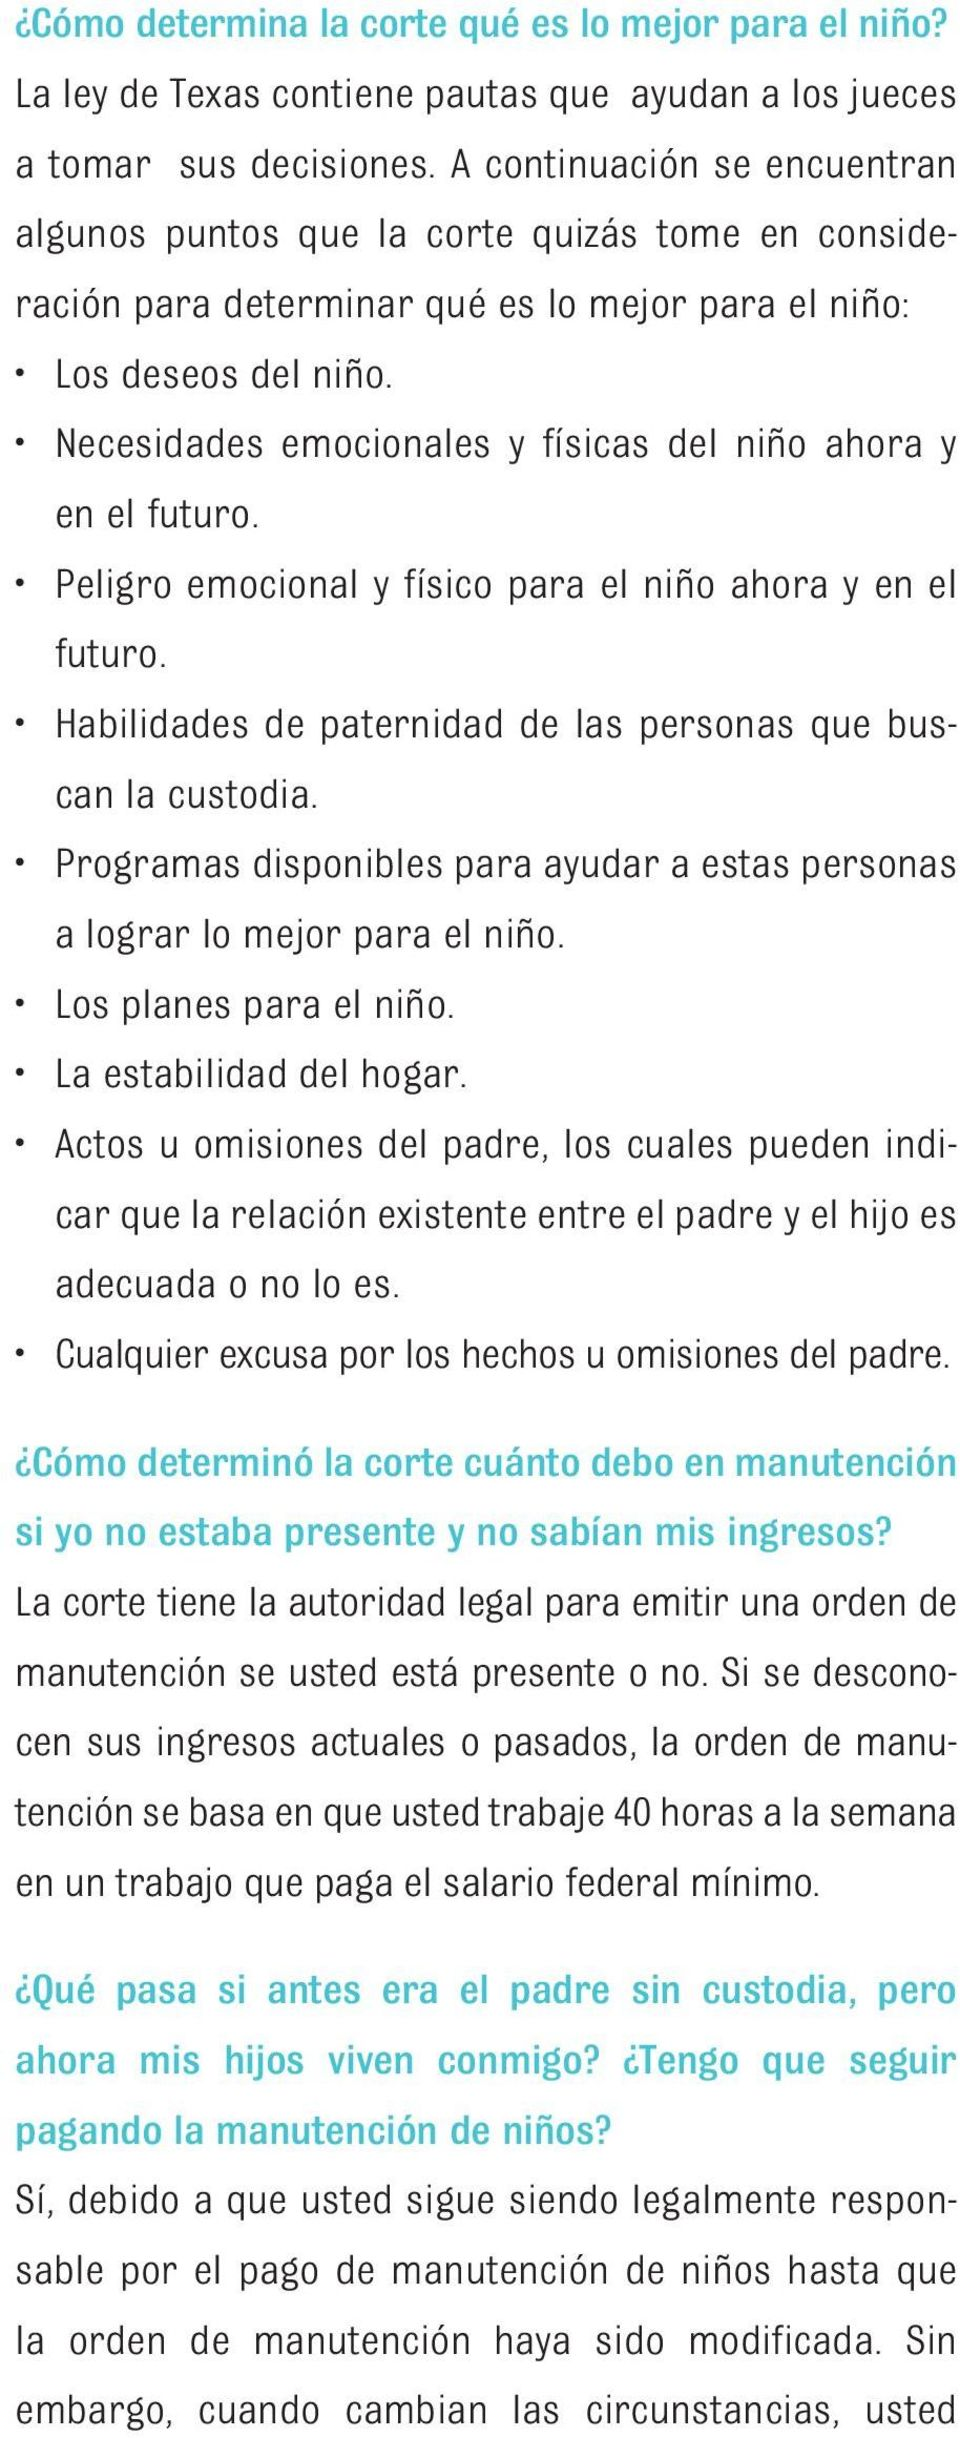 MANUAL PARA PADRES SIN CUSTODIA - PDF